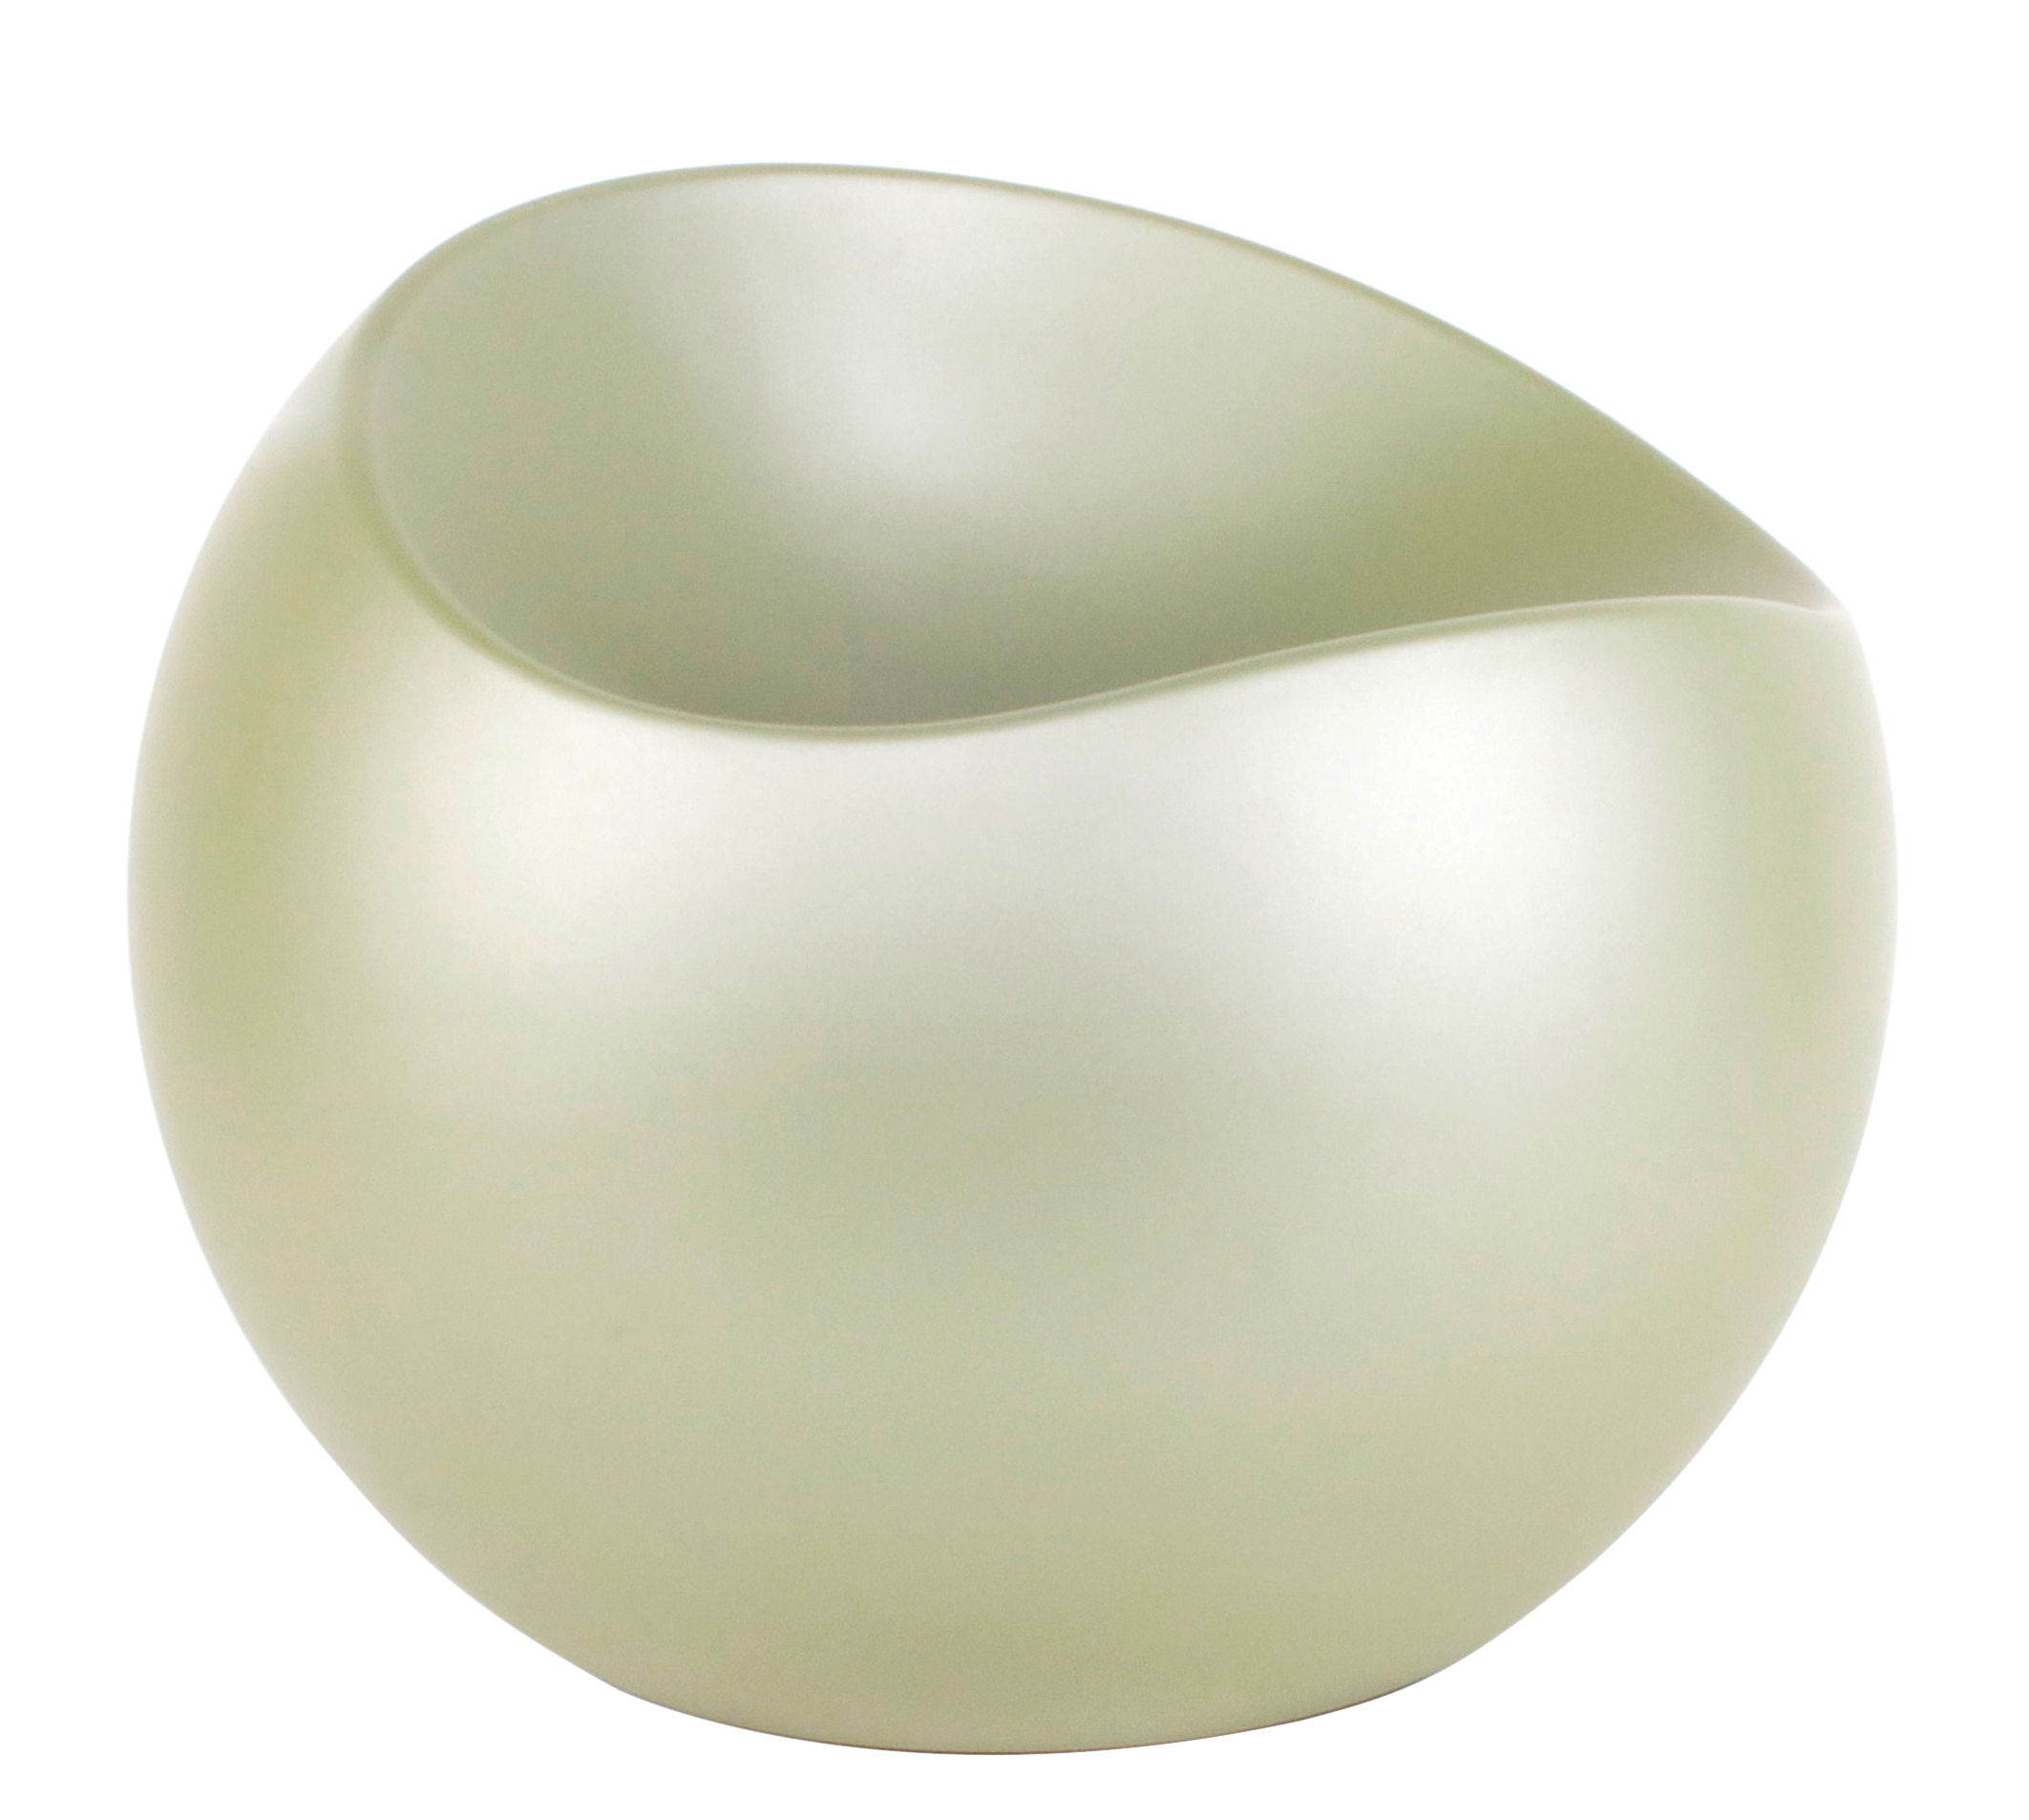 Furniture - Kids Furniture - Ball Chair Pouf by XL Boom - Matt emeraude - Recycled lacquered ABS